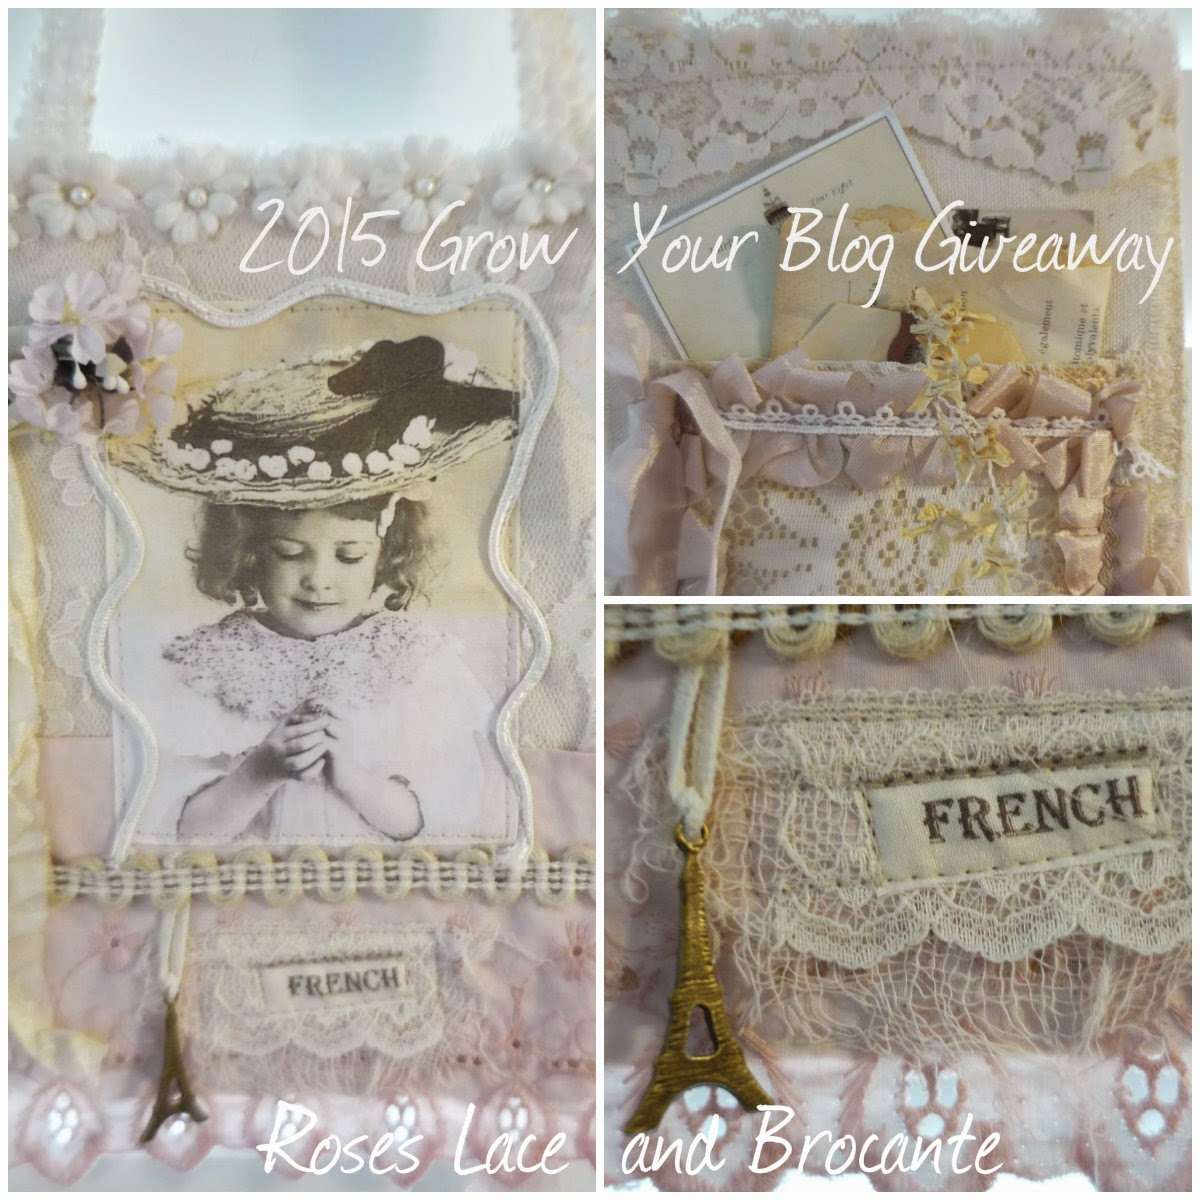 My Giveaway for Grow Your Blog 2015